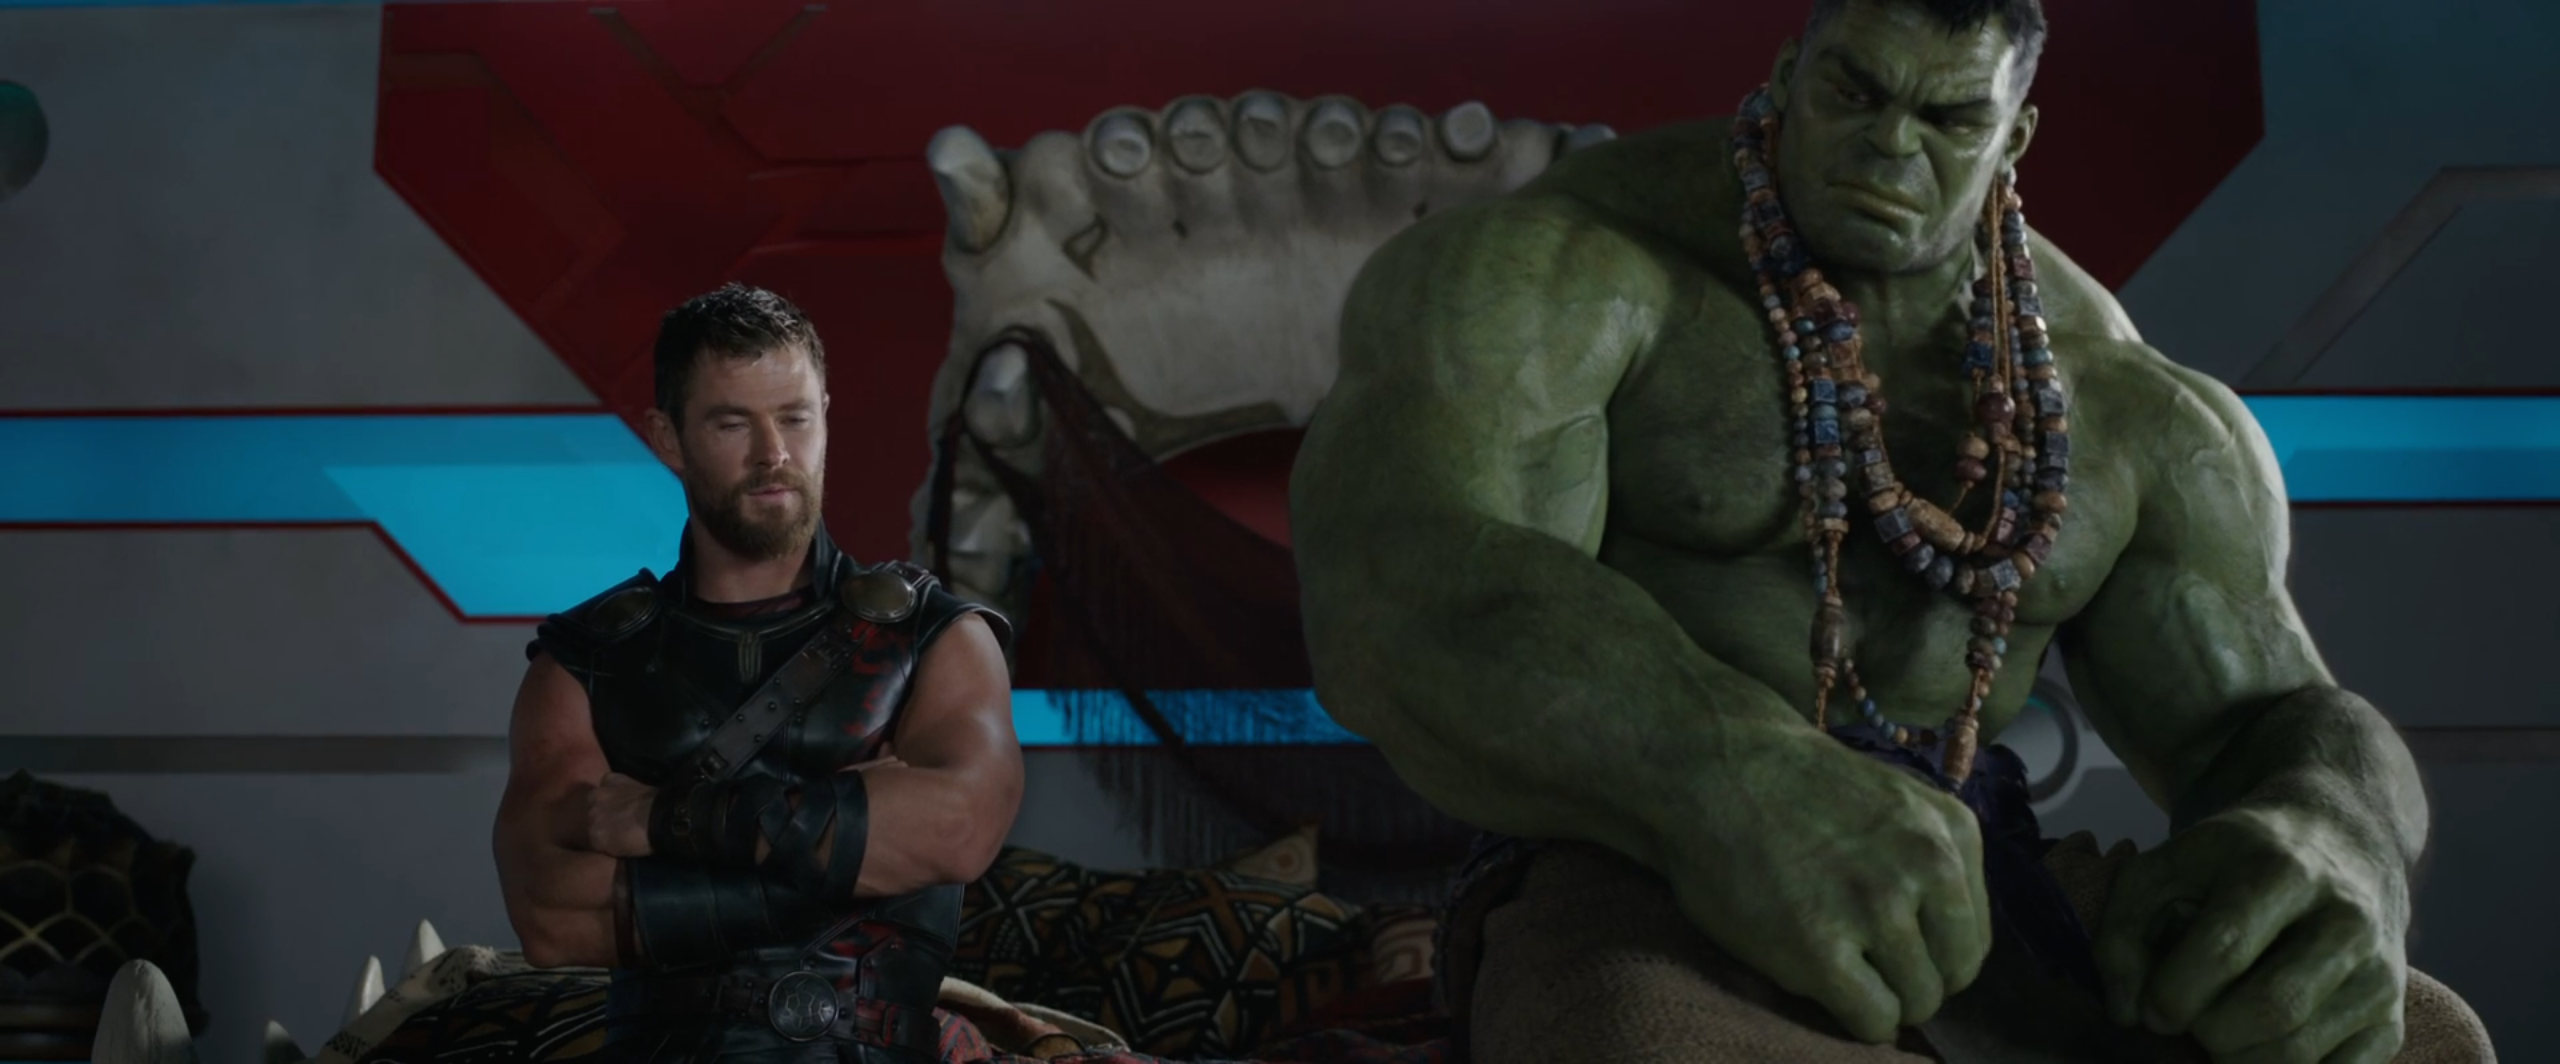 49 thor: ragnarok hd wallpapers | background images - wallpaper abyss